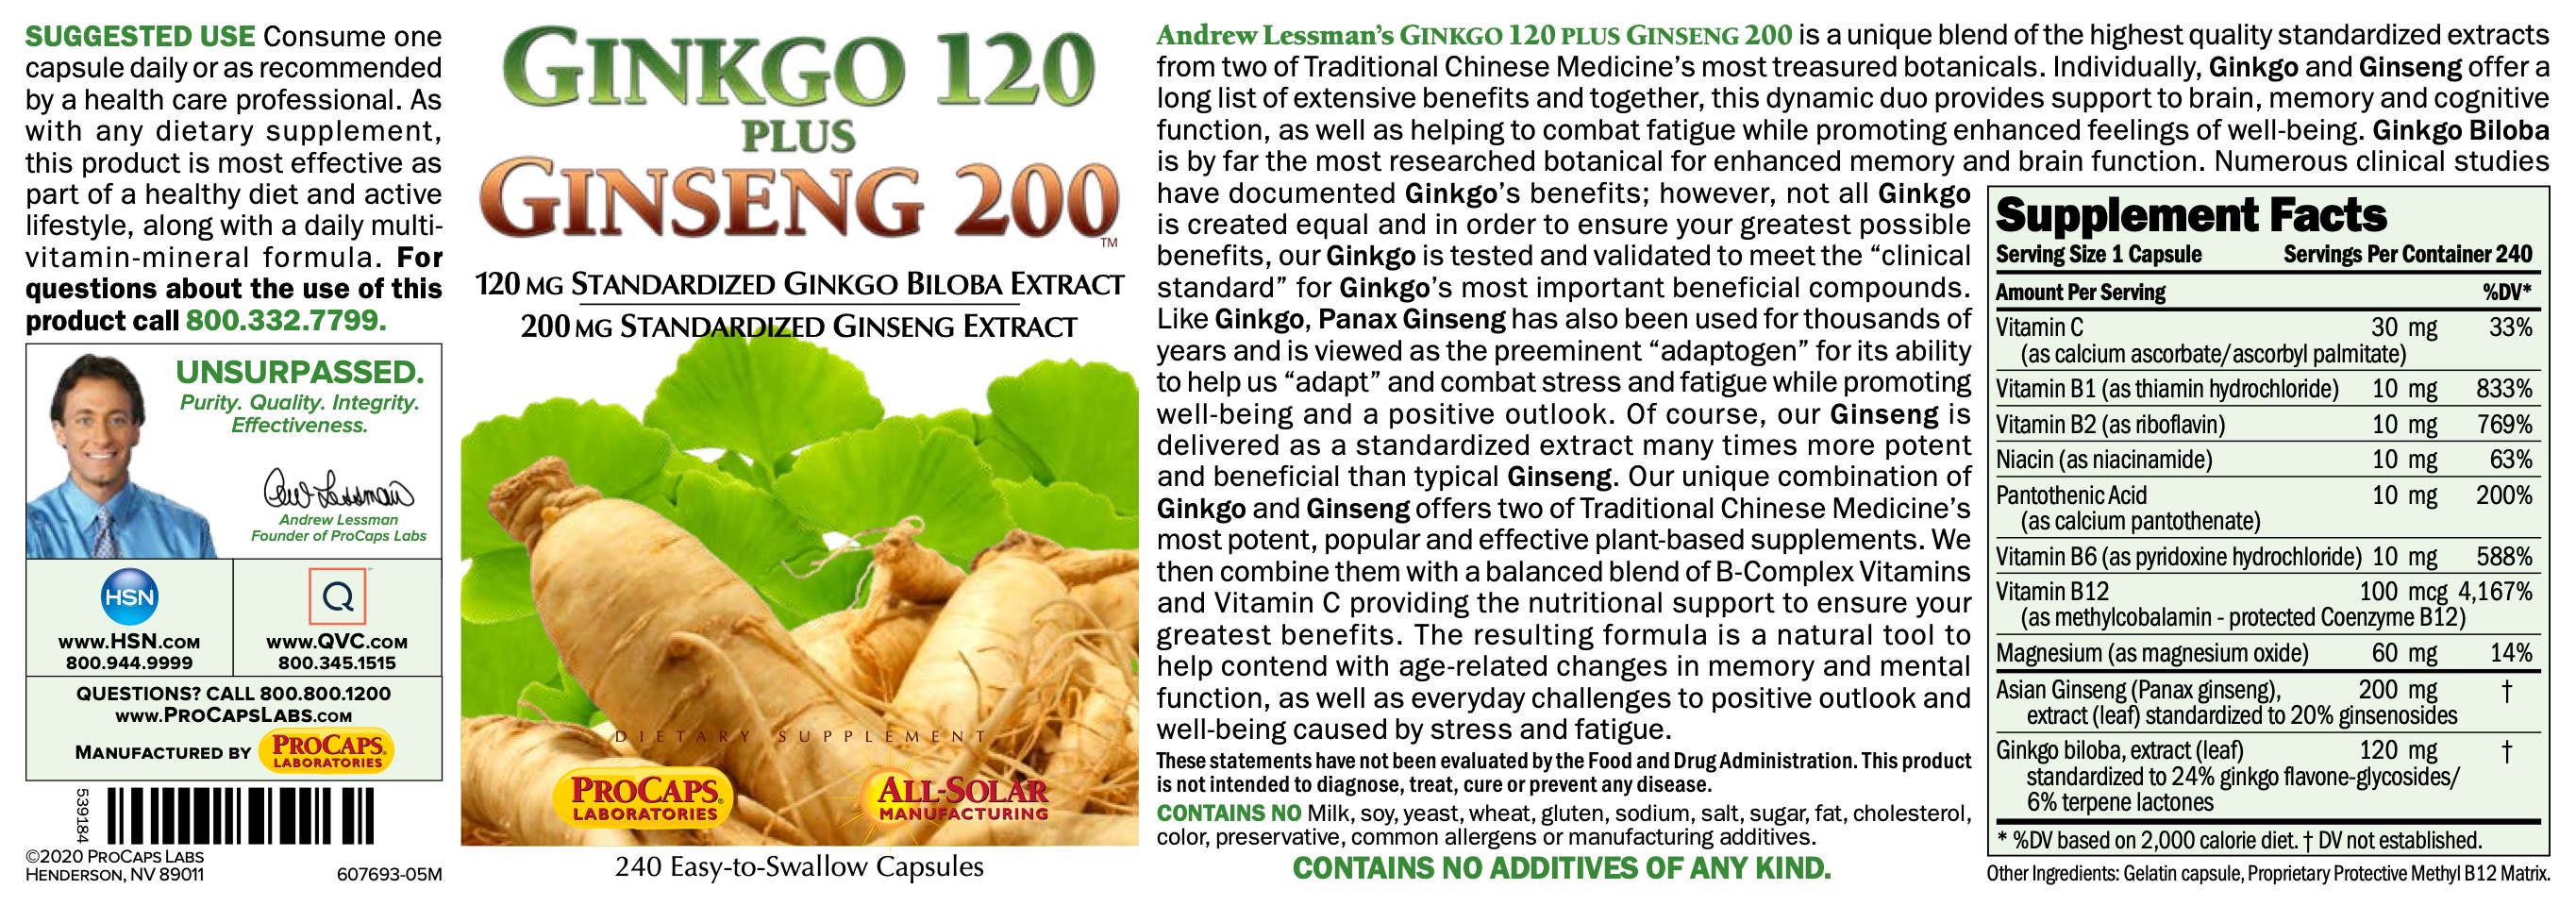 Ginkgo-120-plus-Ginseng-200-Capsules-Nervous-System-Support